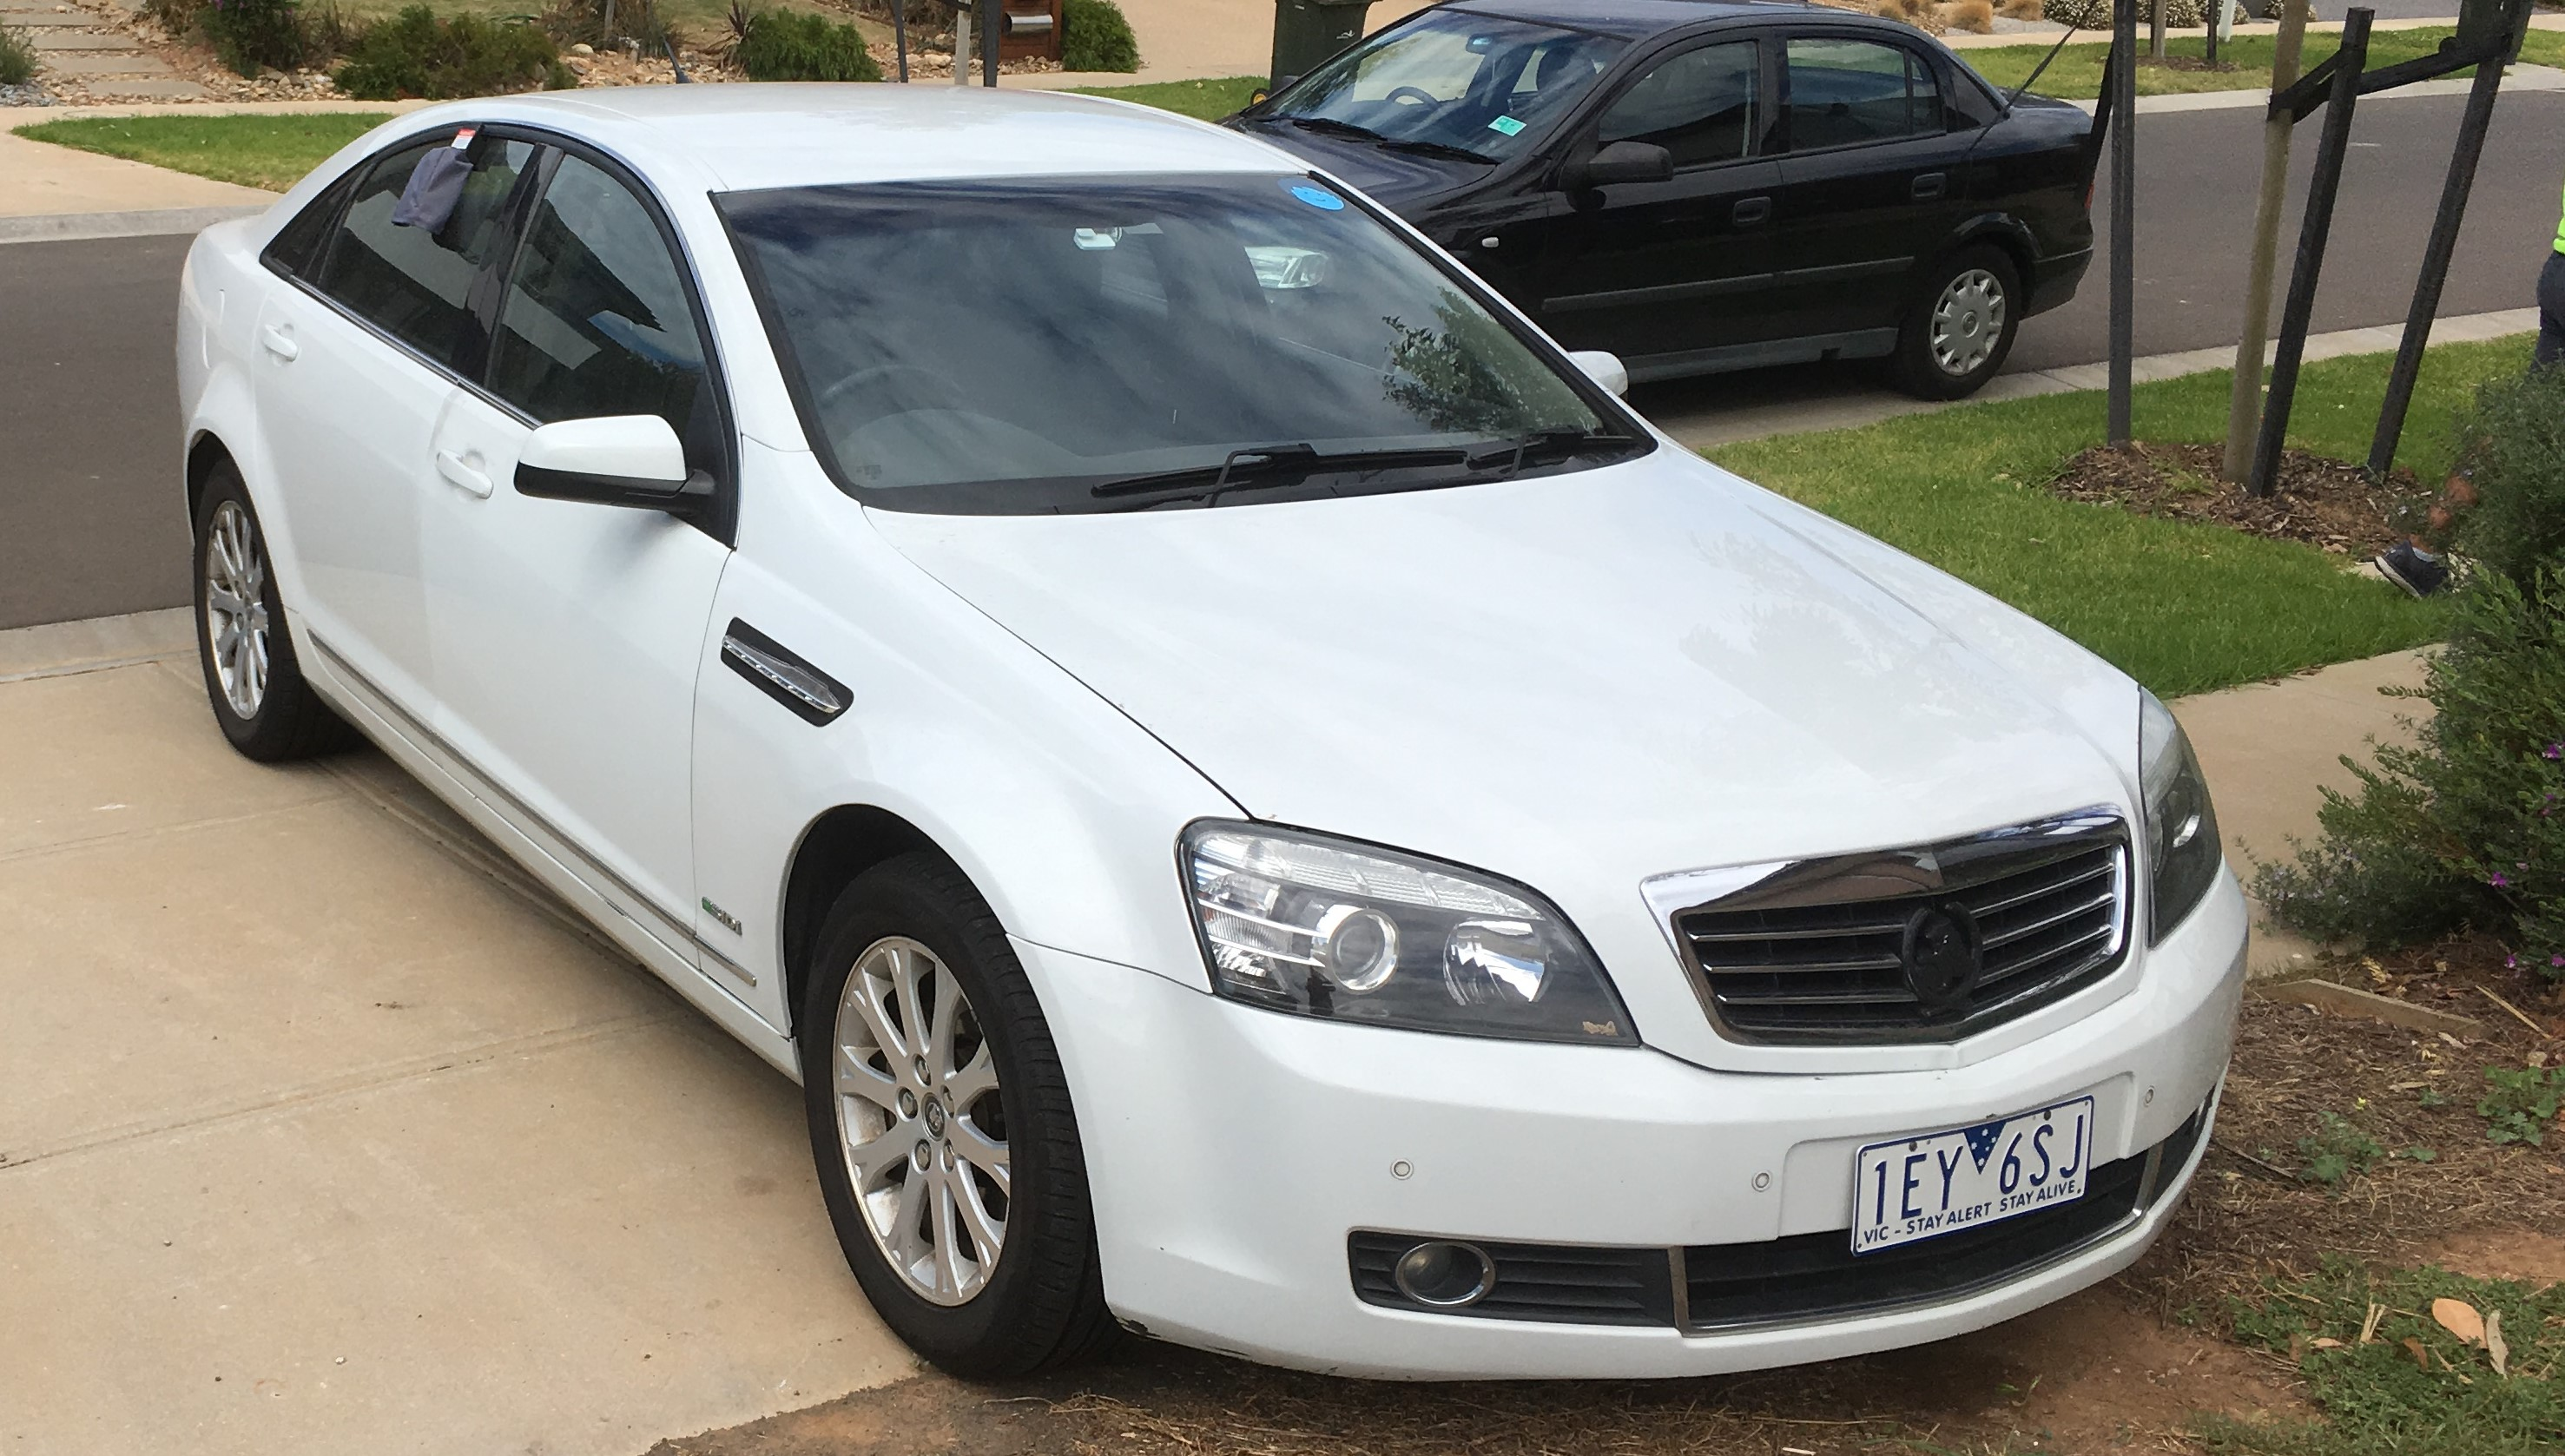 Picture of Rajat's 2009 Holden Statesman